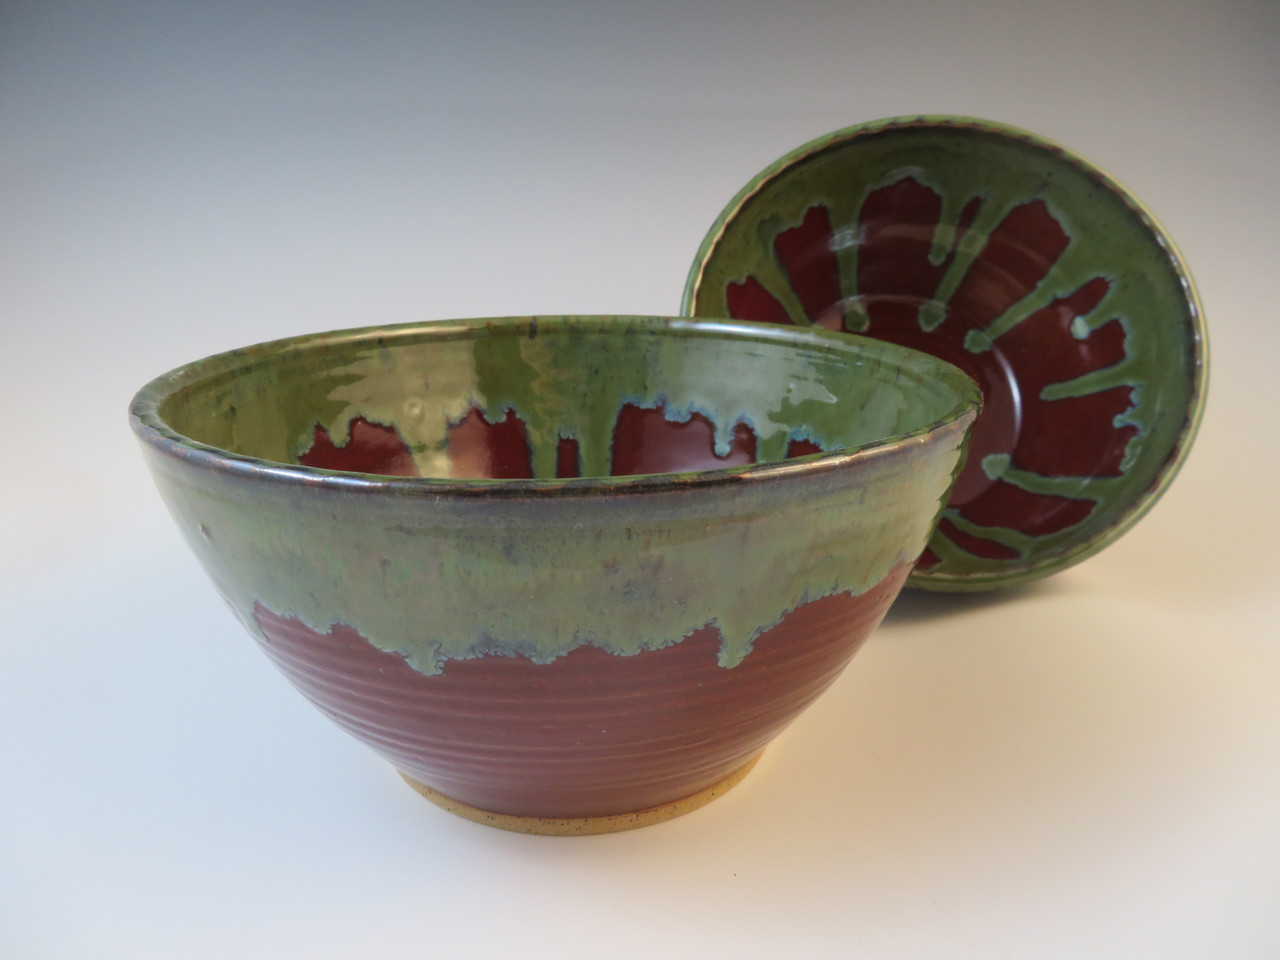 Serving Bowls in Deep Red with Green Rim